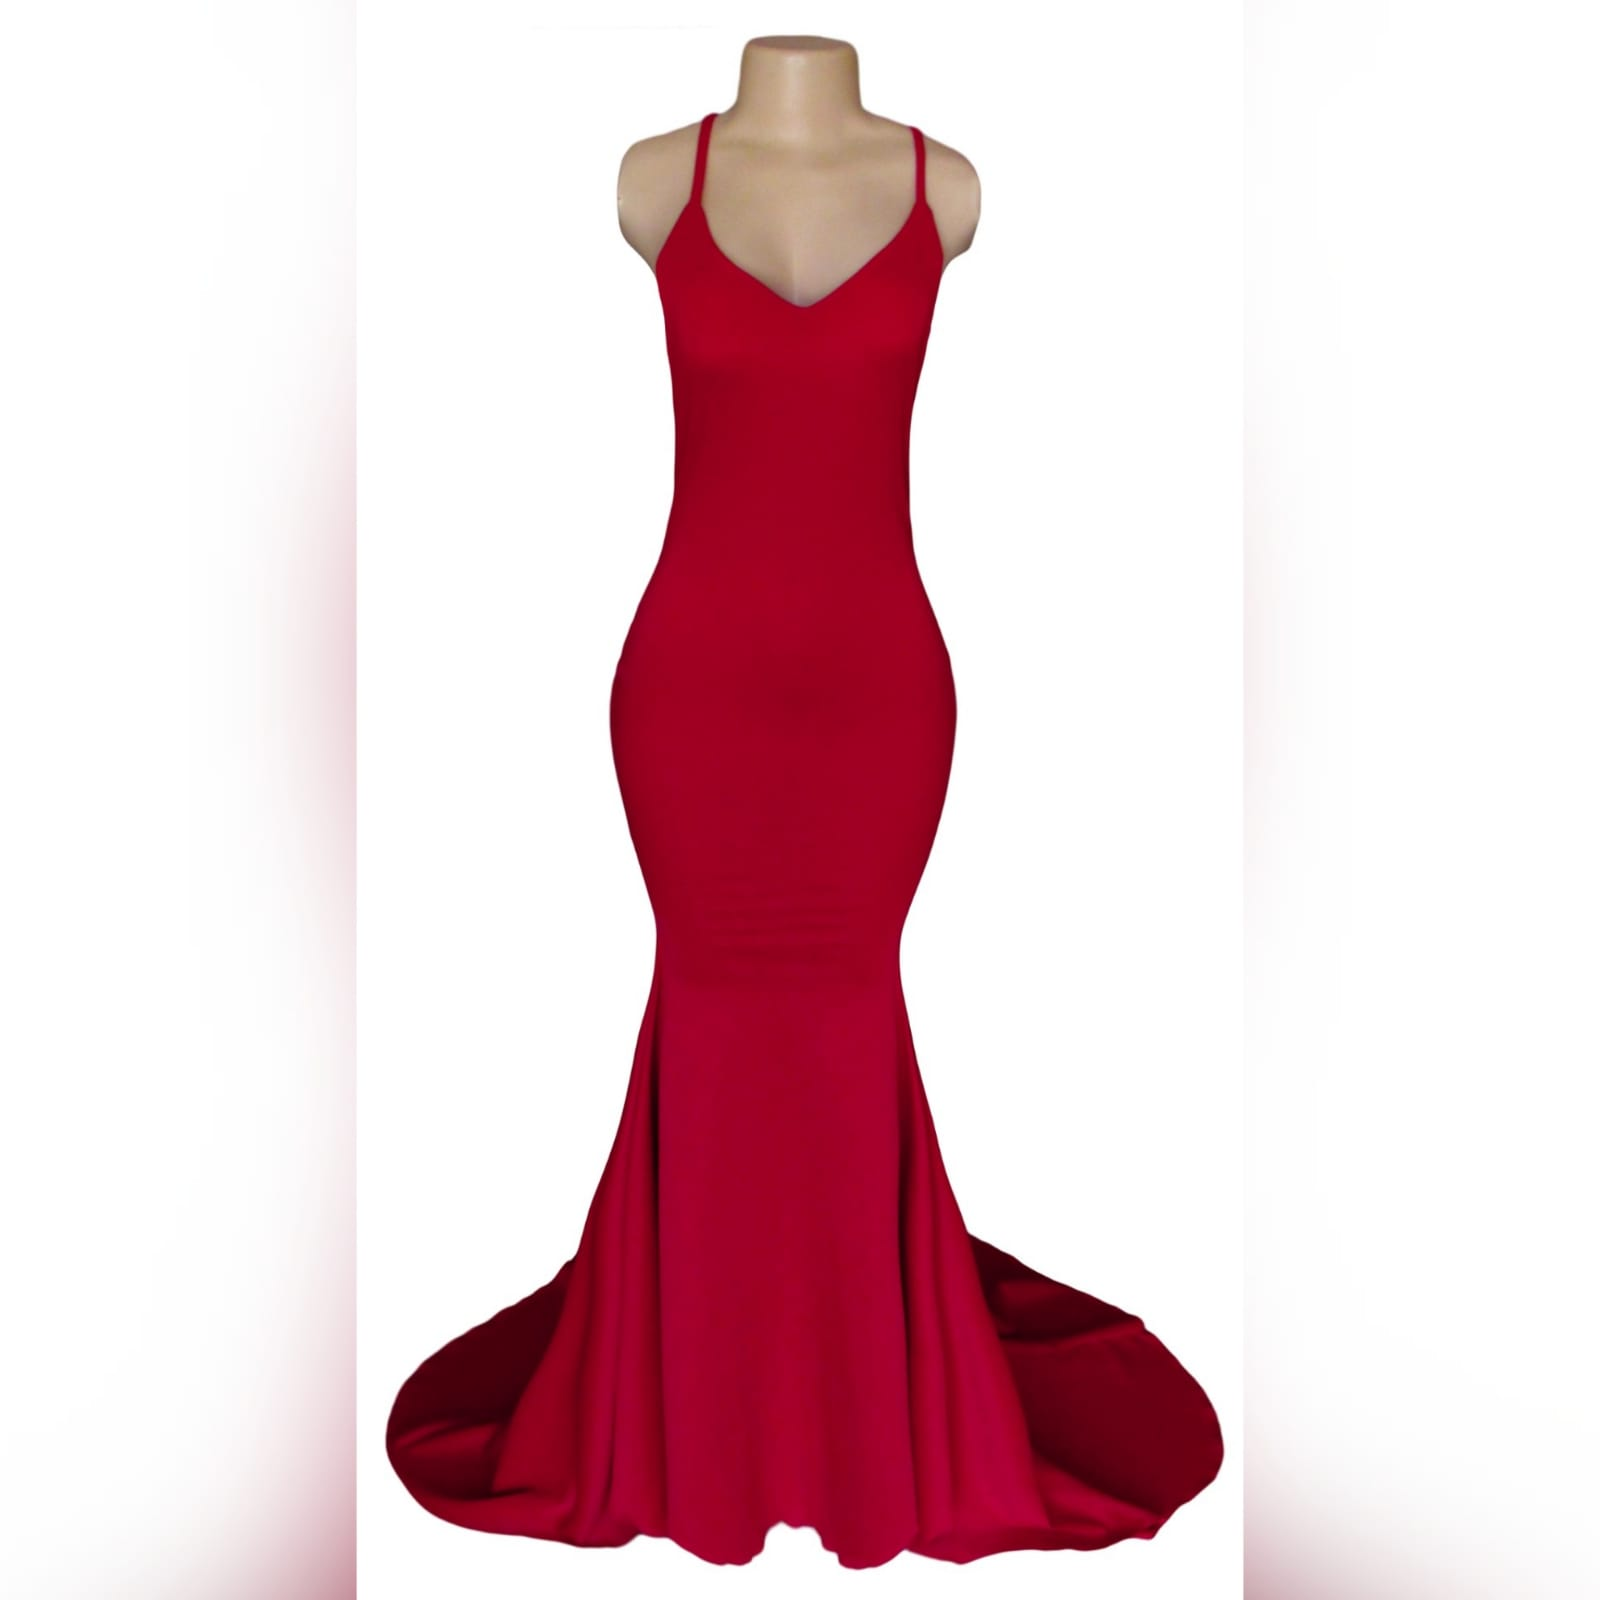 Red soft mermaid prom dress with a v neckline 5 red soft mermaid prom dress with a v neckline, a low open back and thin crossed shoulder straps, with a train.